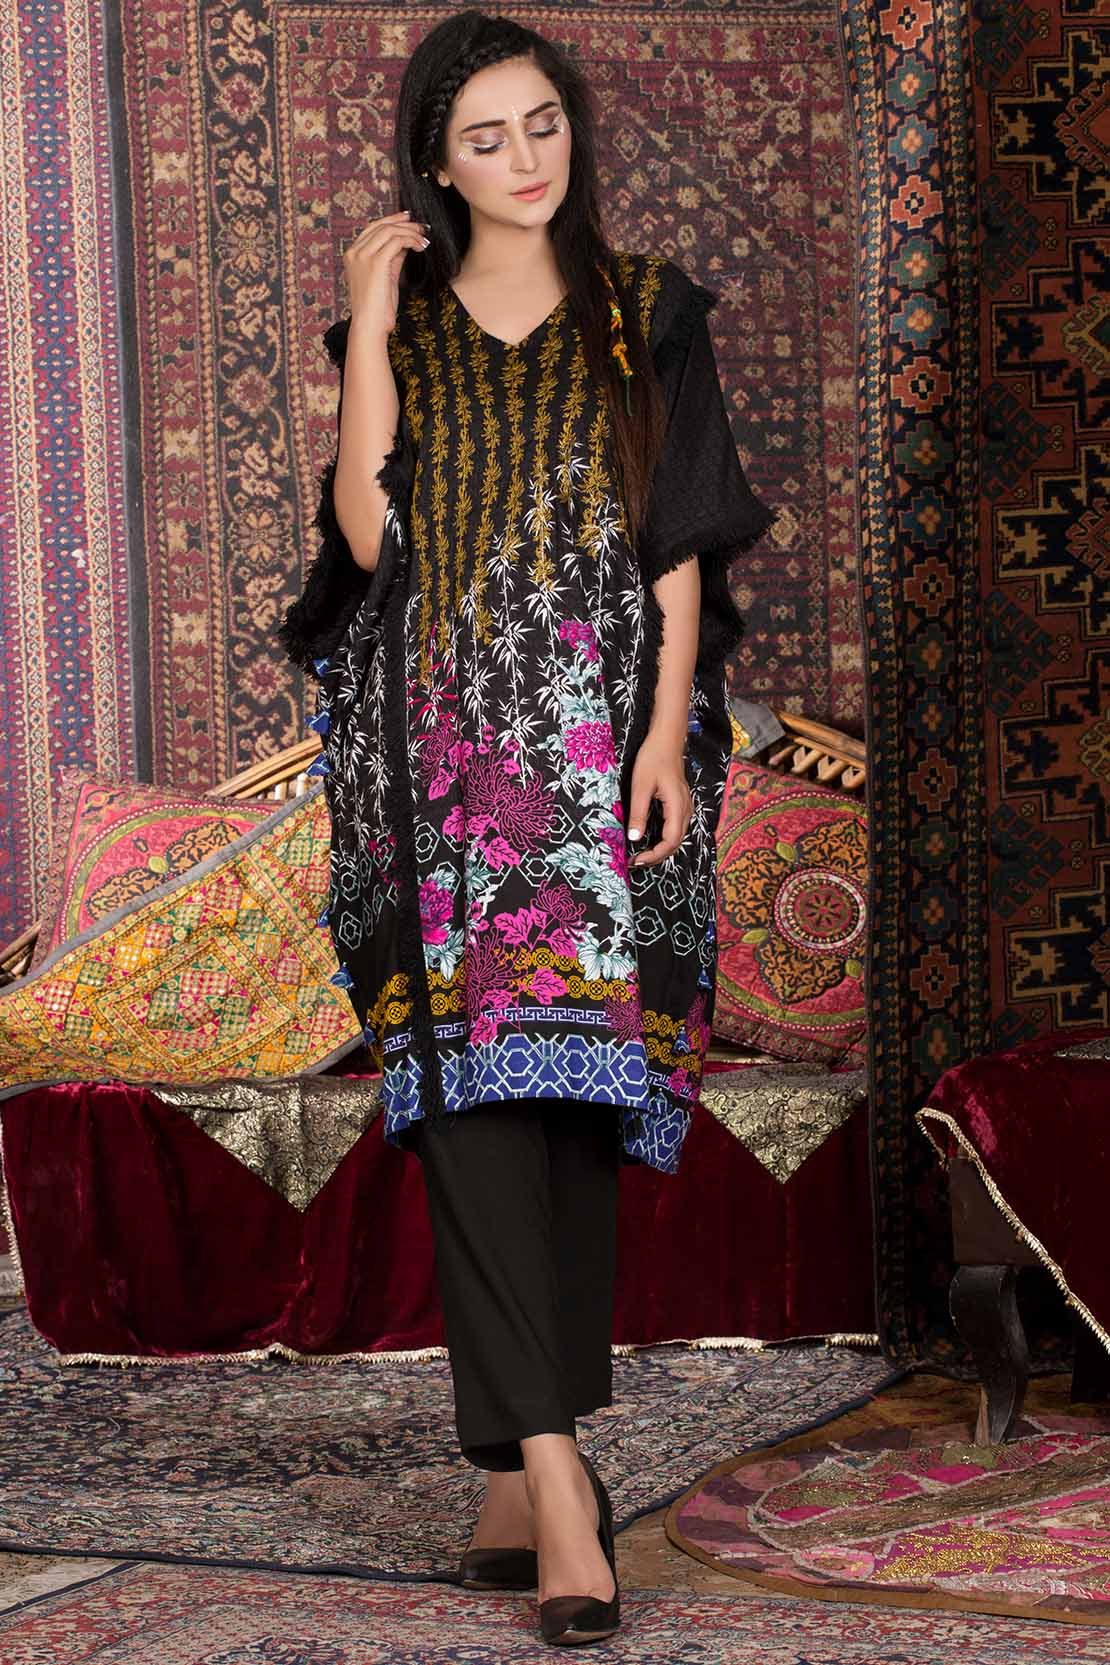 829c6dc1e8 ... 2 piece and 3 piece suits ranging from 1600 PKR to 4000 PKR onwards in  price. Every single piece of this collection has a nice and unique print ...